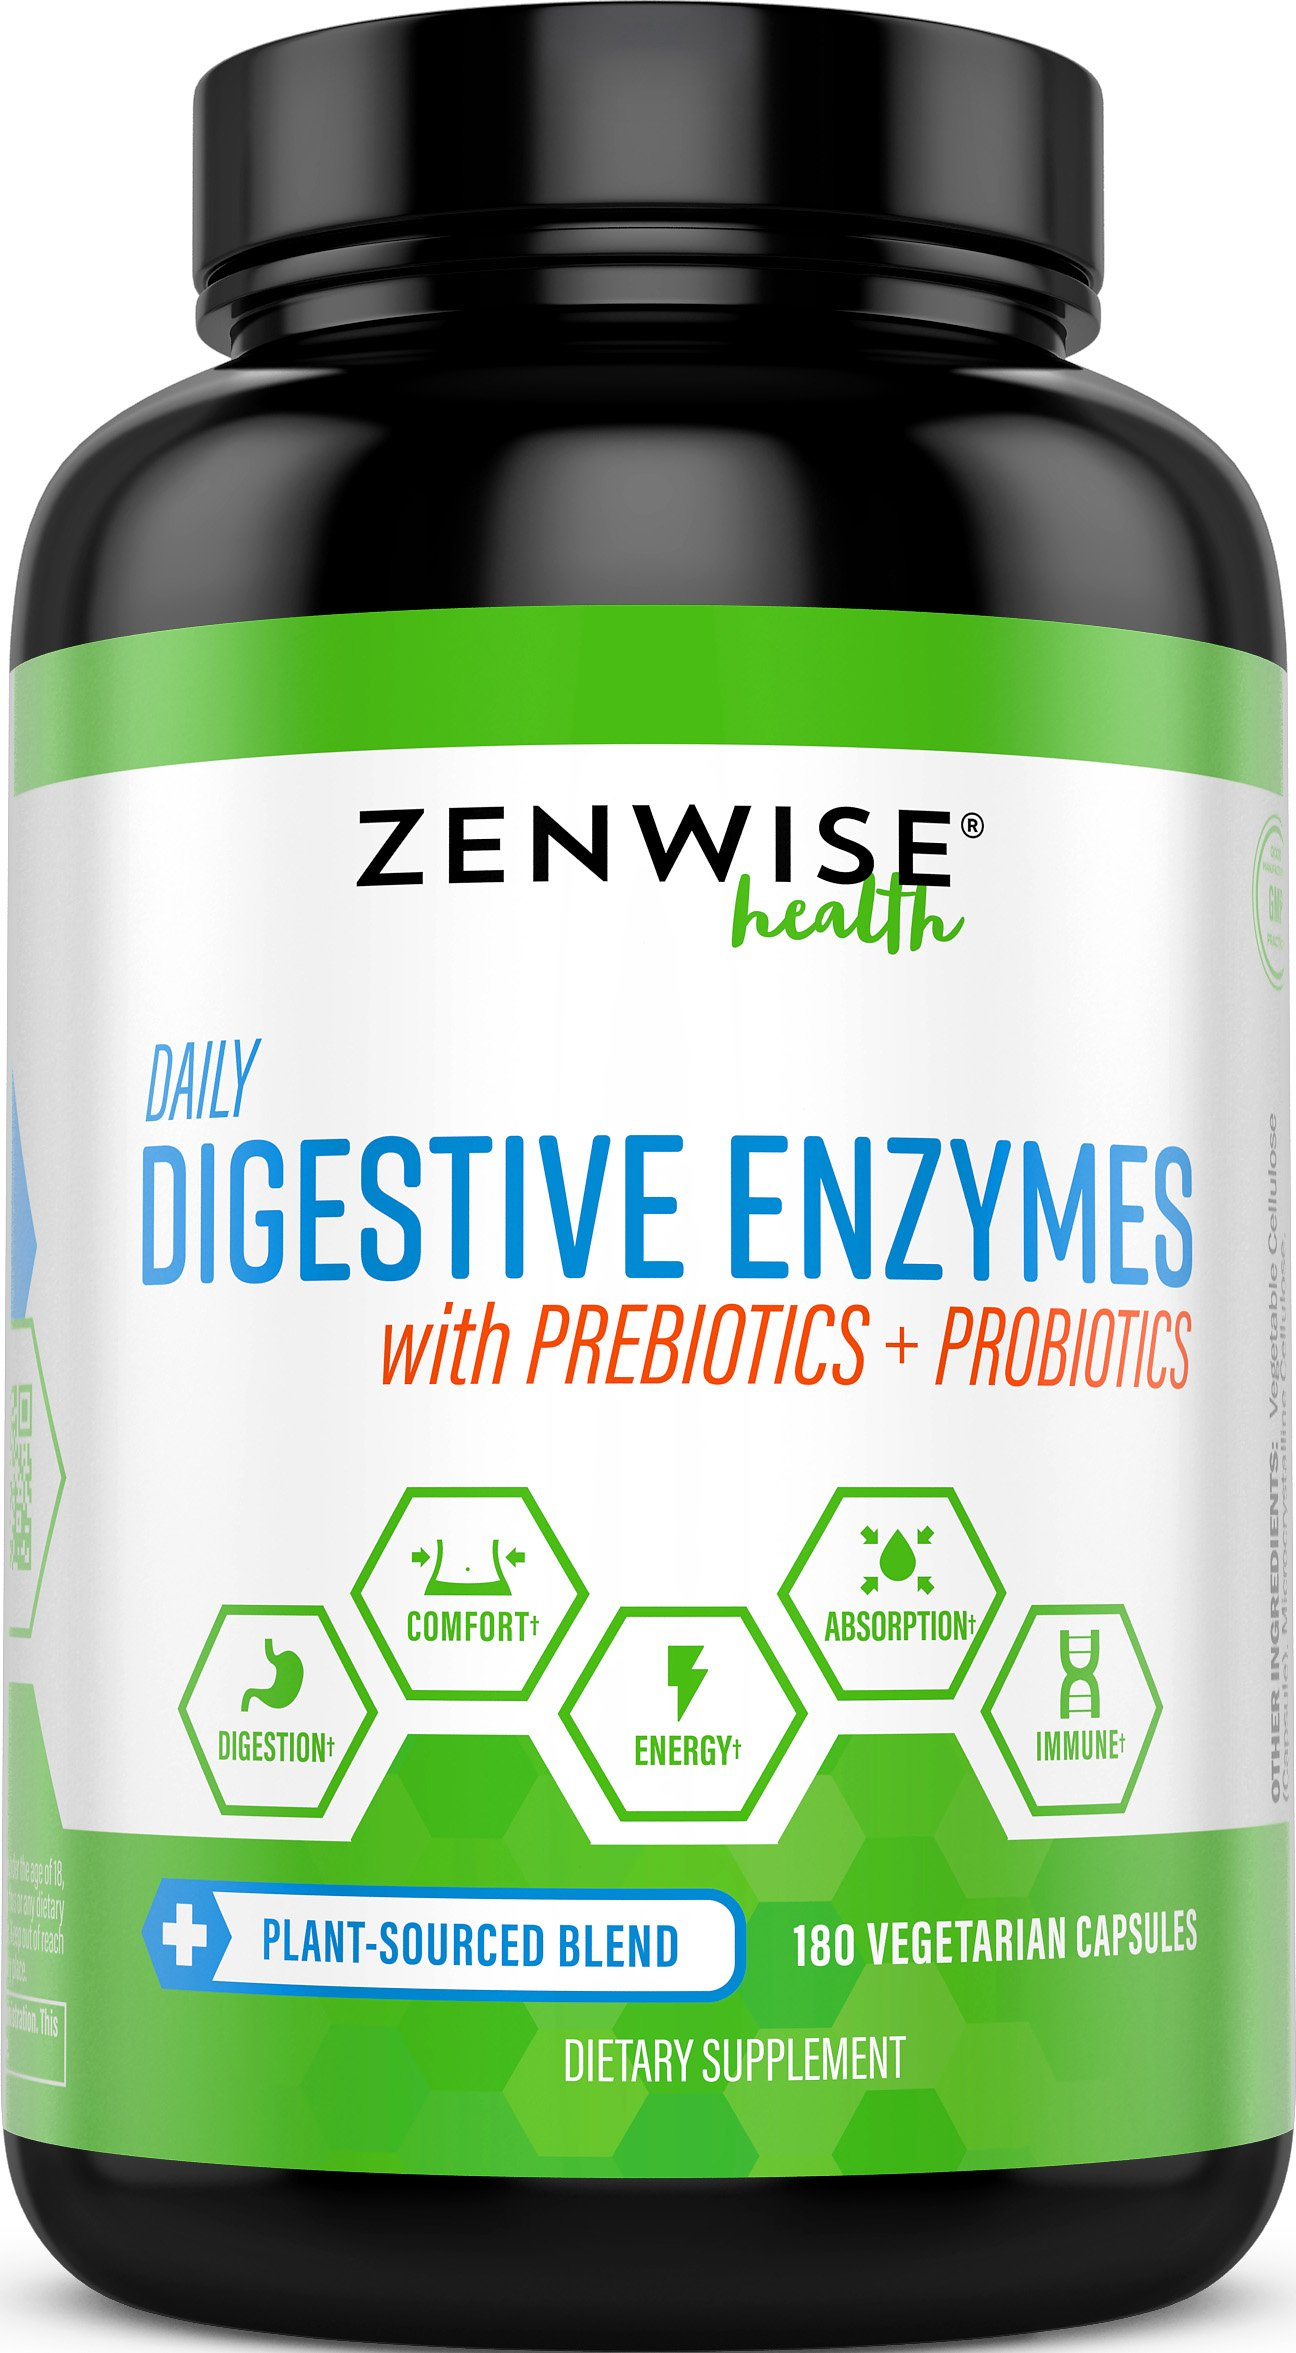 Digestive Enzymes Plus Prebiotics & Probiotics - Natural Support for Better Digestion & Lactose Absorption - For Bloating, Constipation & Gas Relief + Helps IBS & Leaky Gut - 180 Vegetarian Capsules